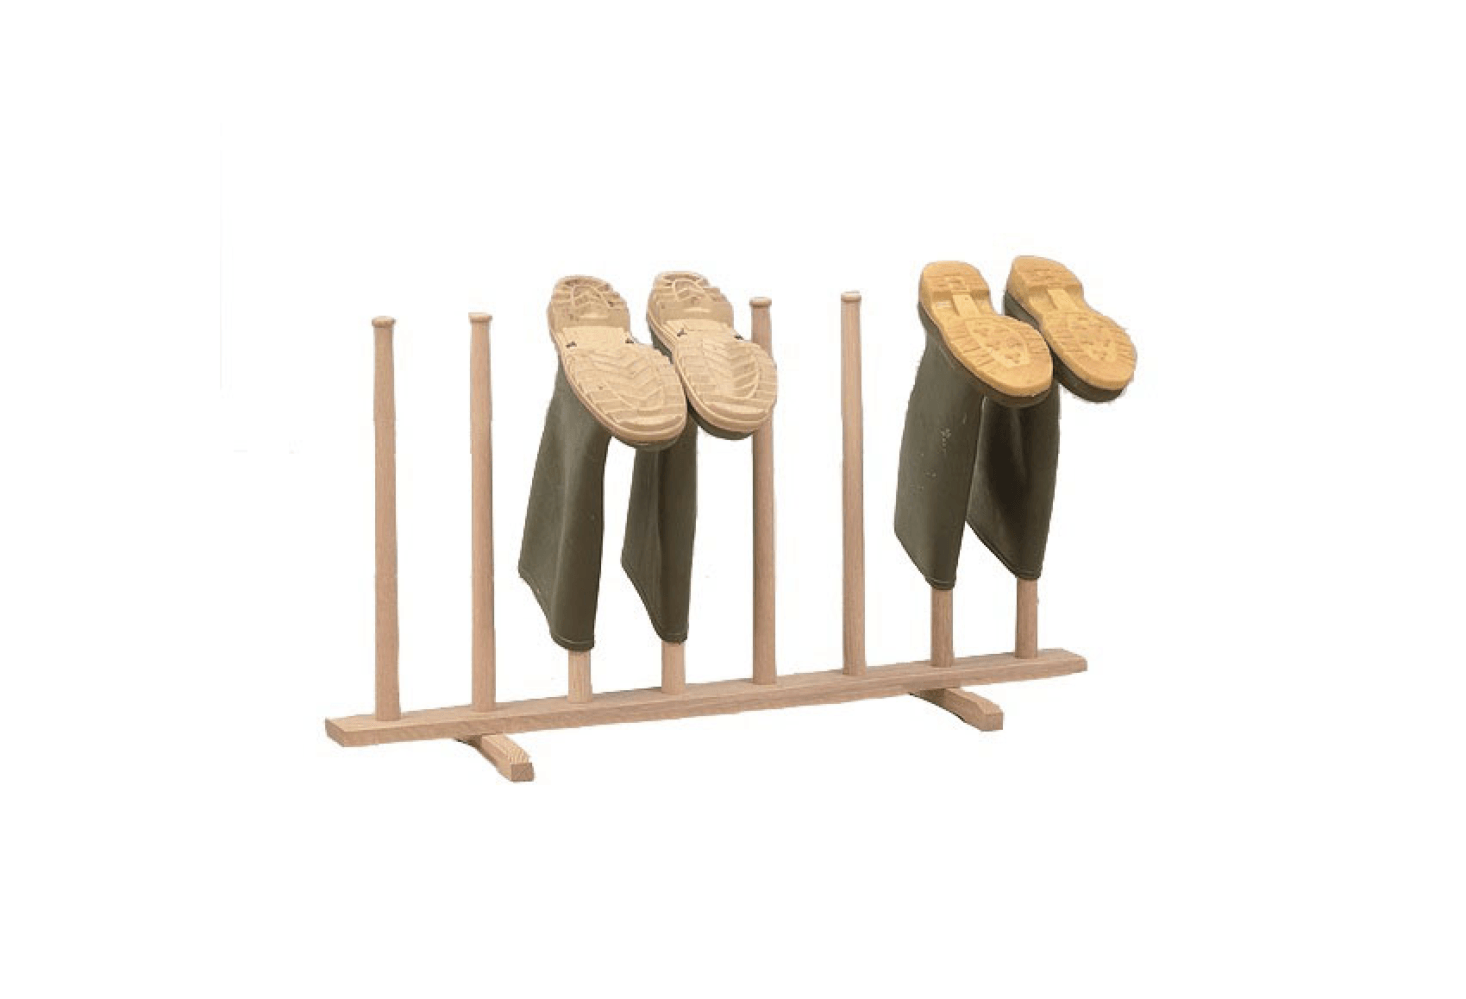 With its tapered pegs, the Henderson Oak Wellington Boot Stand also shown in the top photo is £70; from Cotswold Co., it has a Shaker-esque silhouette.